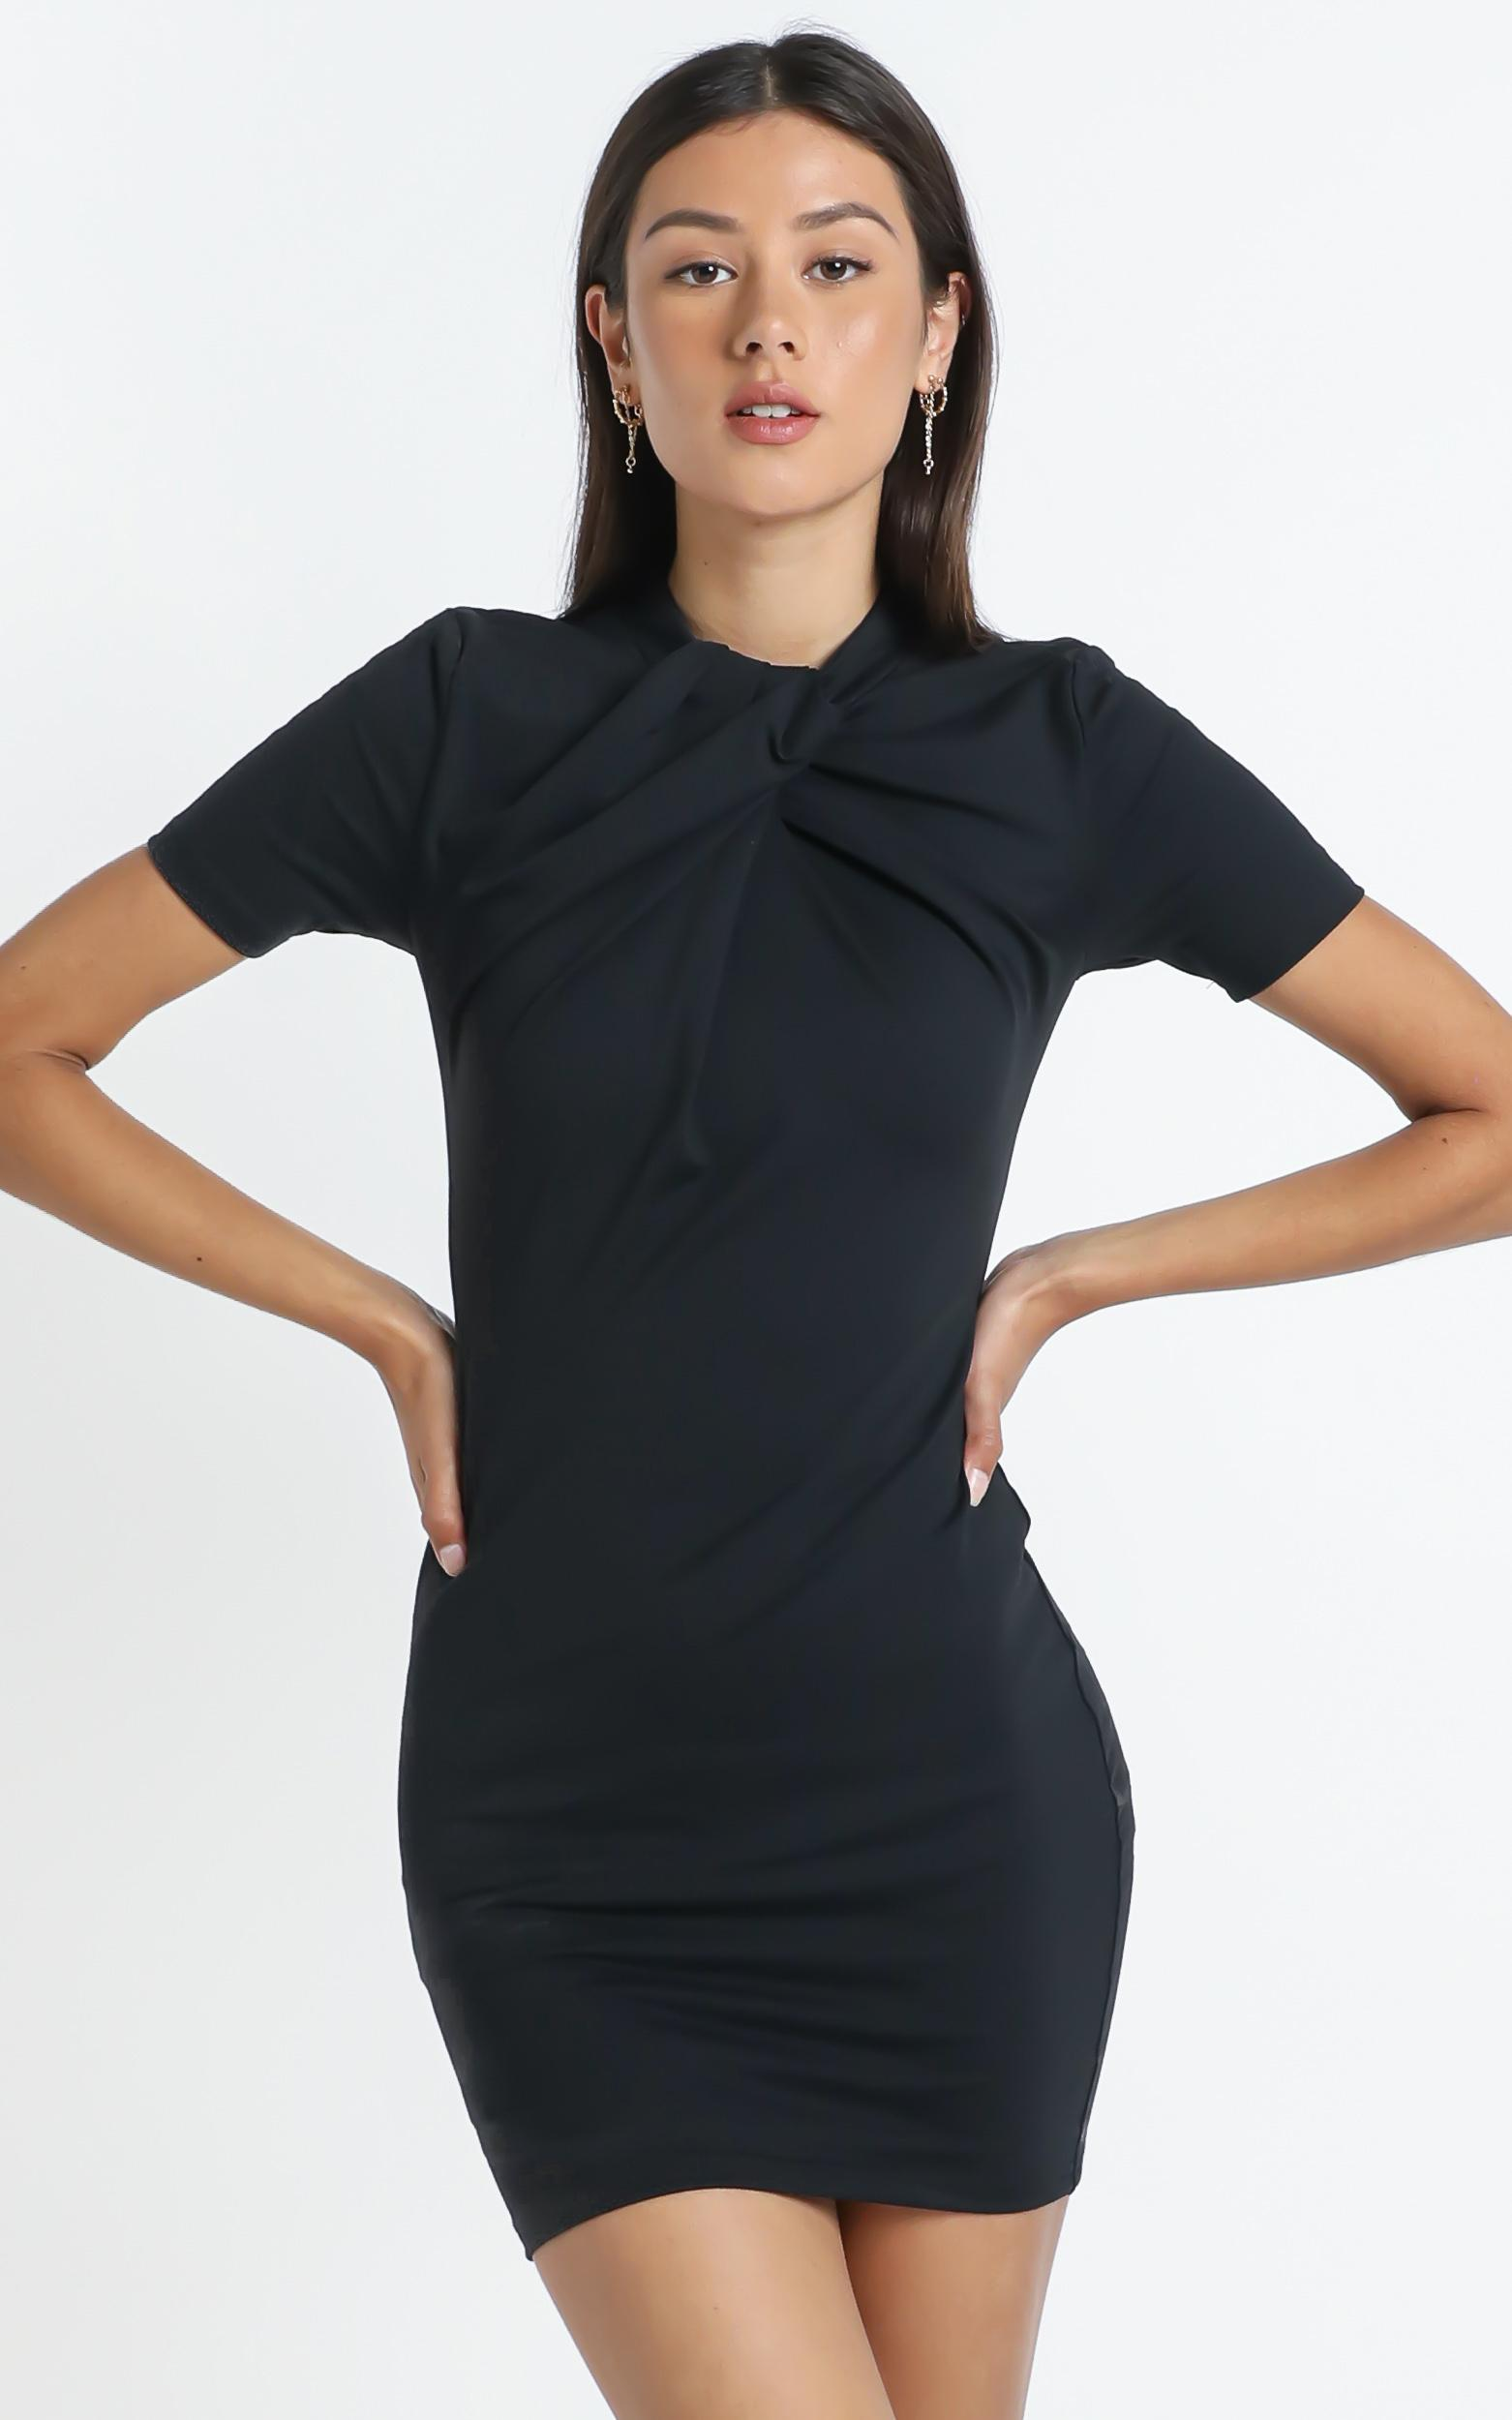 Rudie Dress in Black - 14 (XL), Black, hi-res image number null